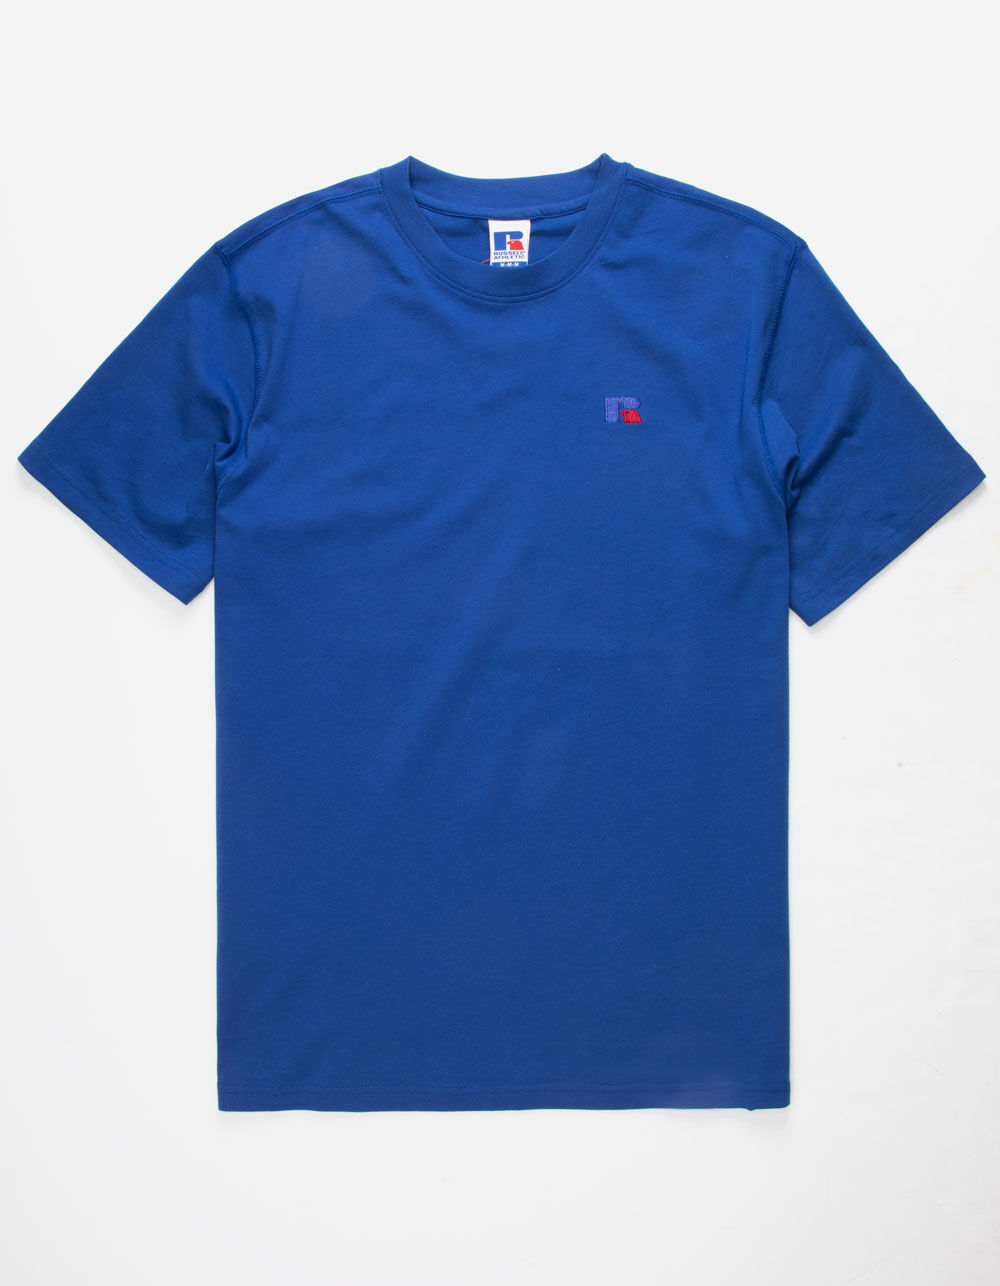 RUSSELL ATHLETIC Baseliner Royal T-Shirt